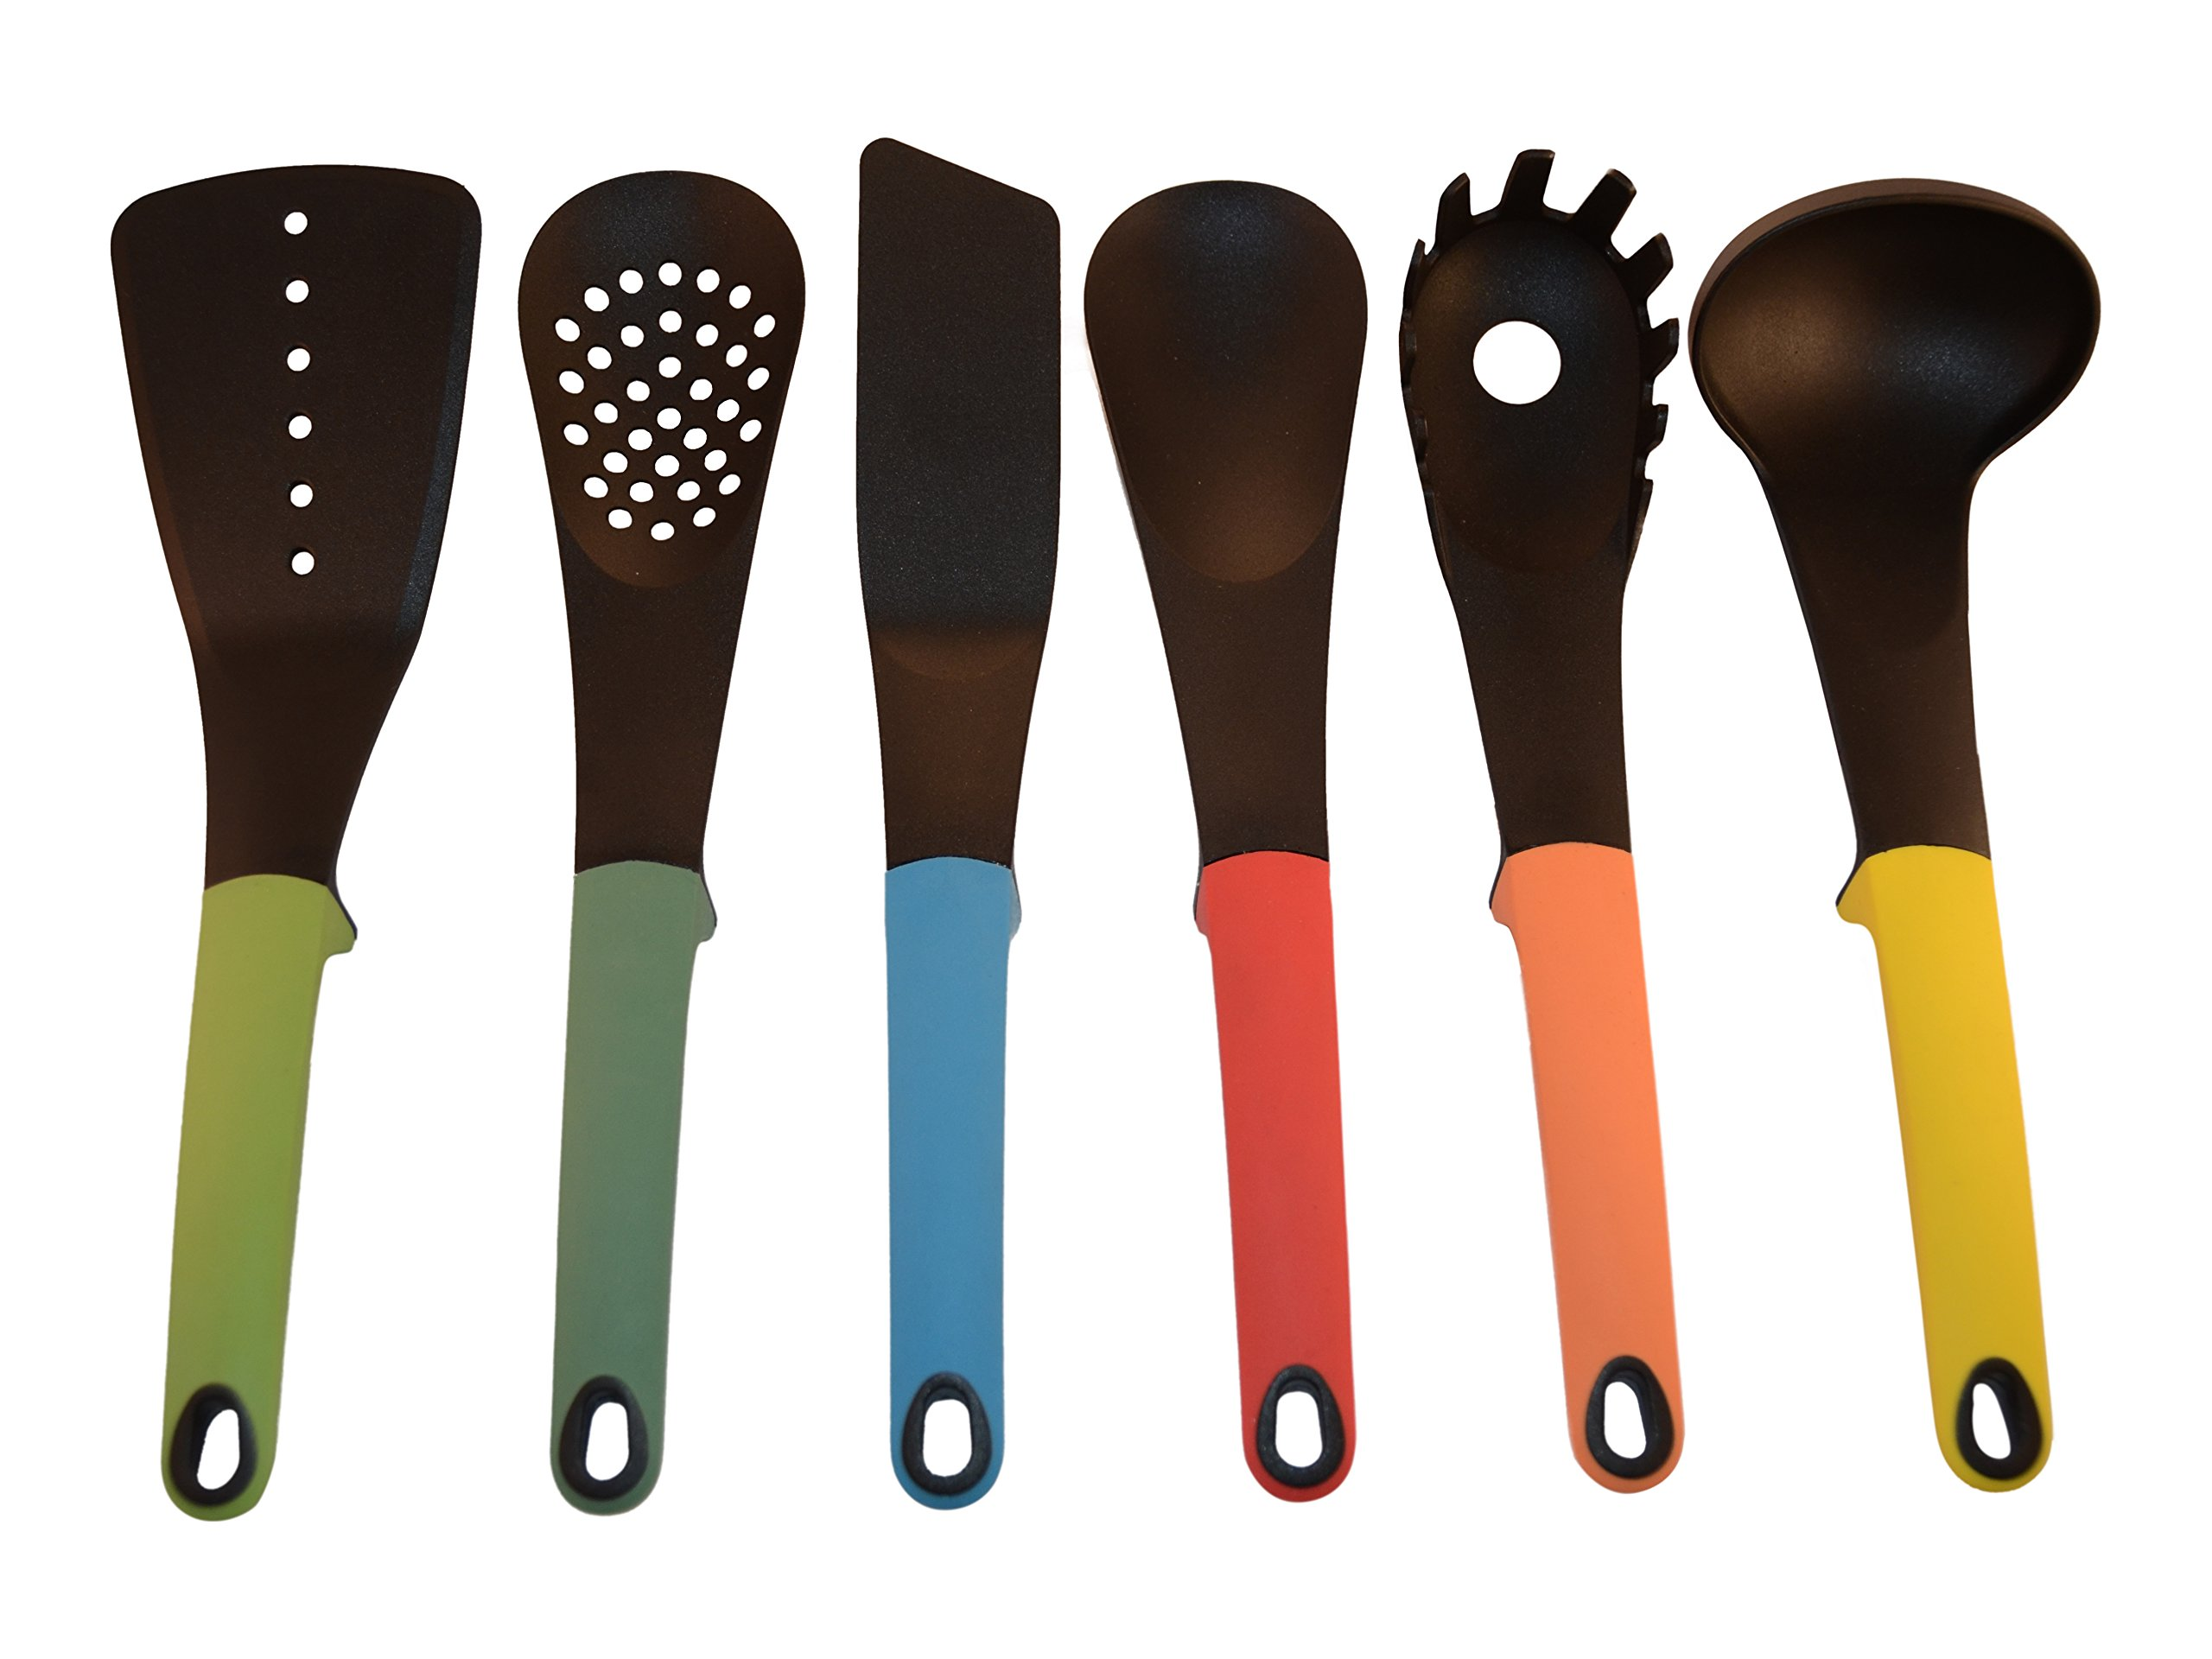 free vector image kitchen utensils royalty view top